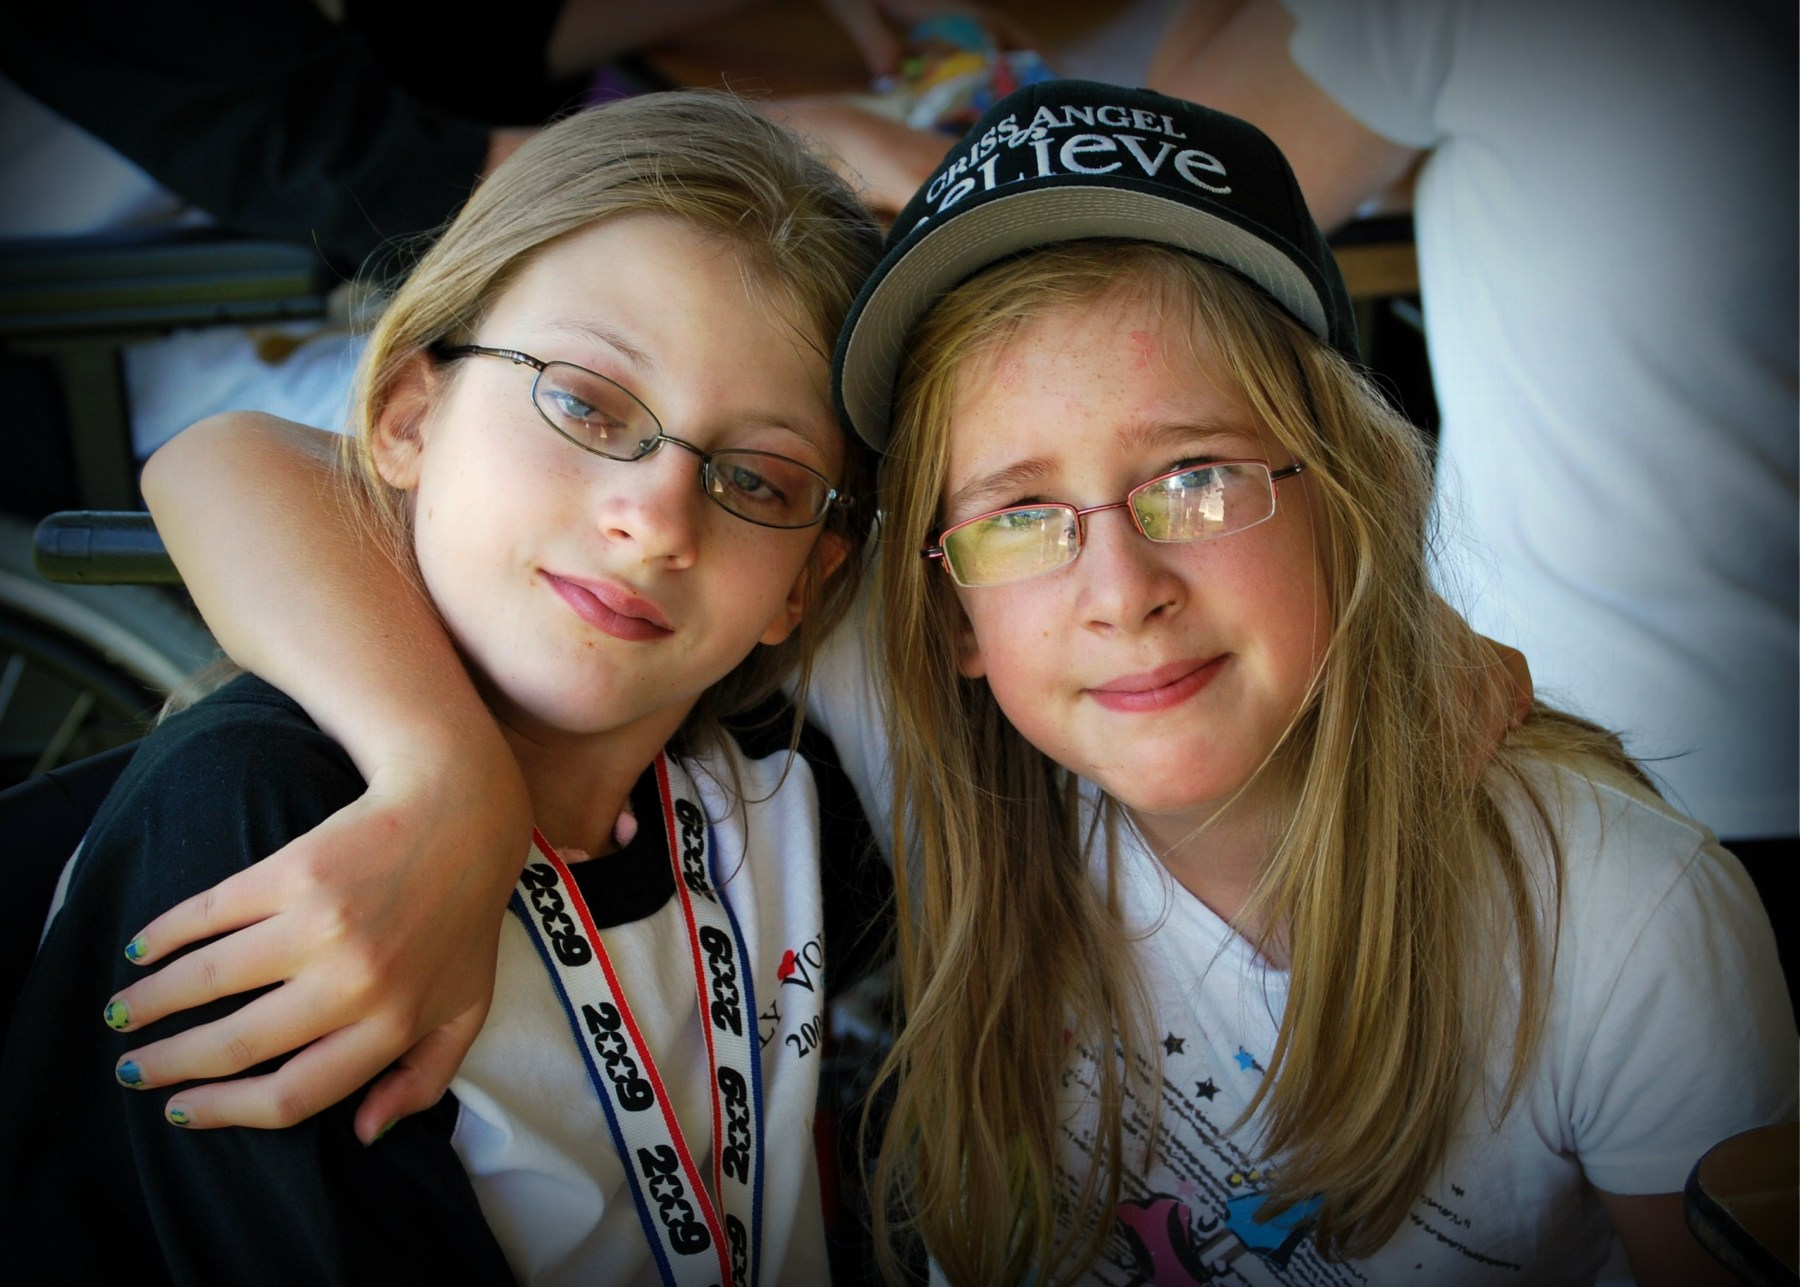 Two girls at our 2009 Going to Bat for Kids event